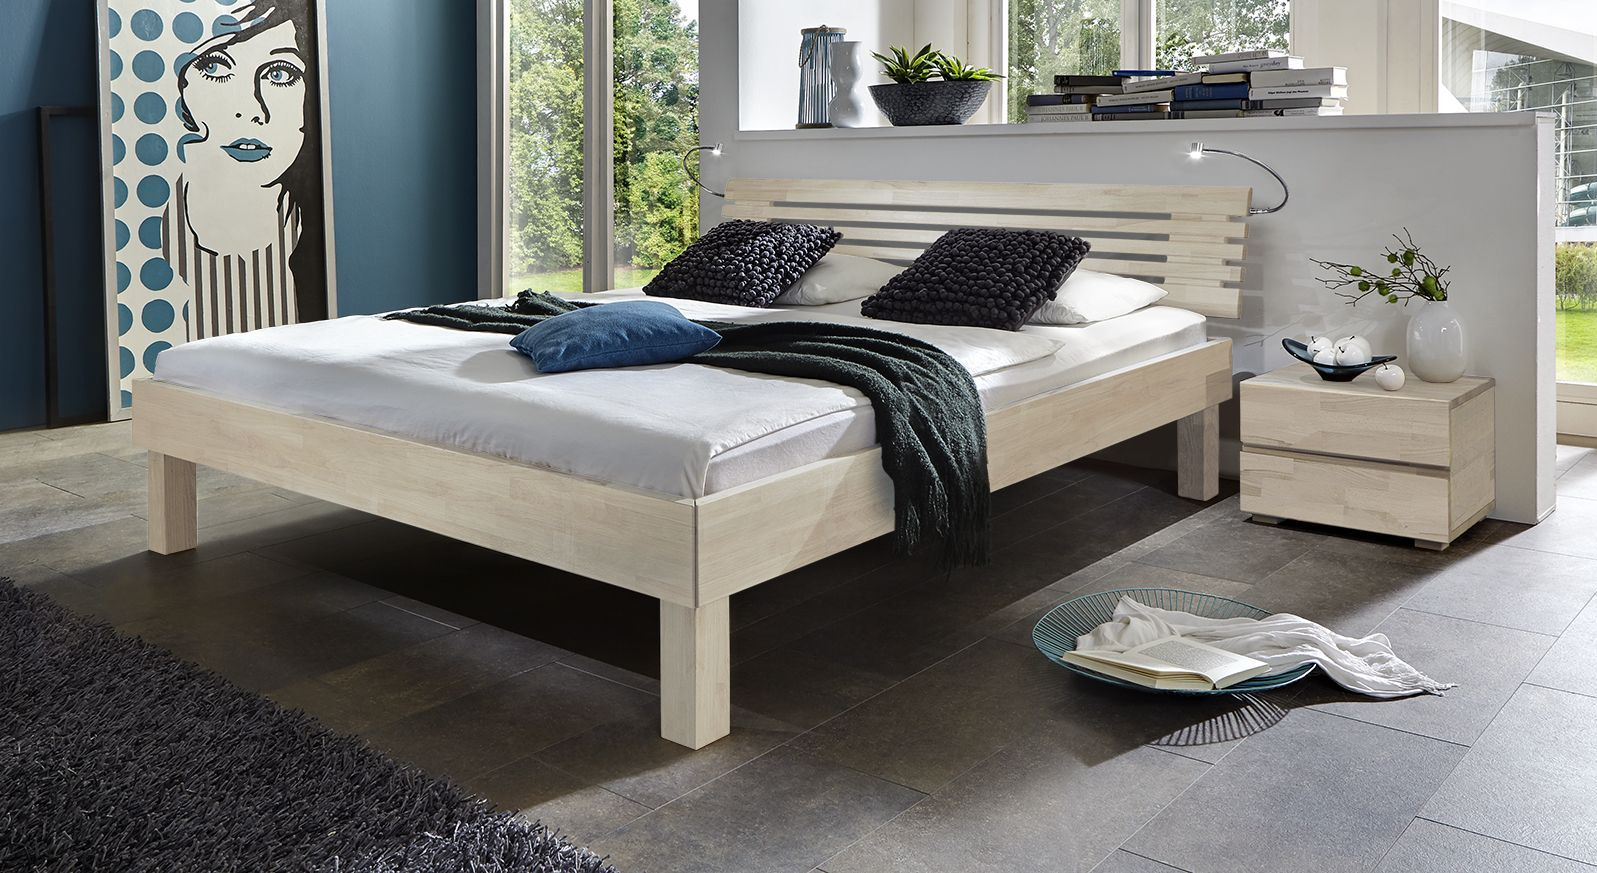 edles doppelbett aus massivholz in buche livenza. Black Bedroom Furniture Sets. Home Design Ideas